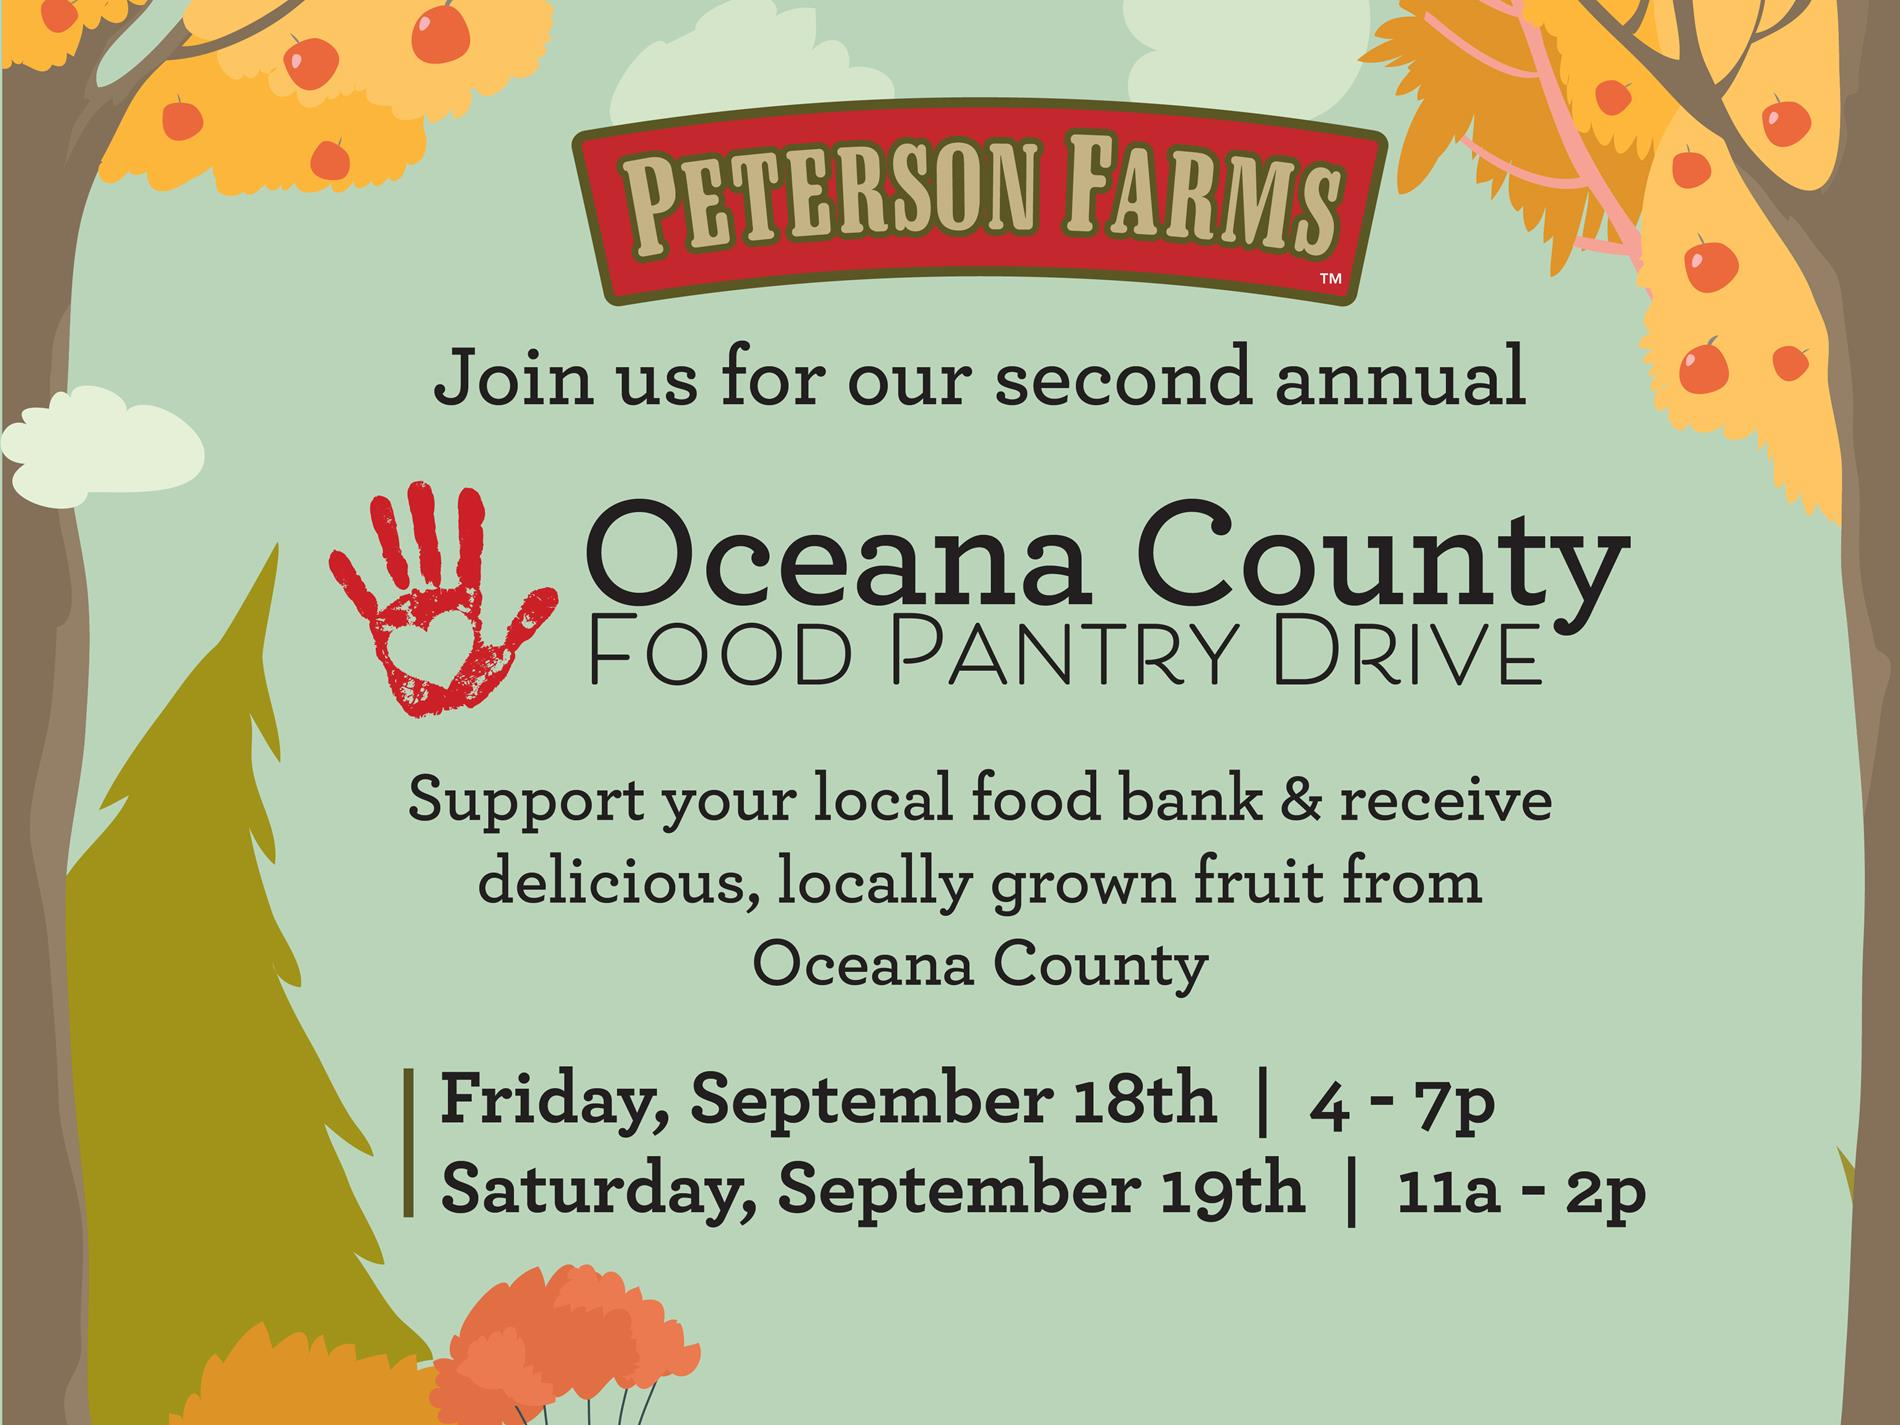 Food Drive poster image from Peterson Farms